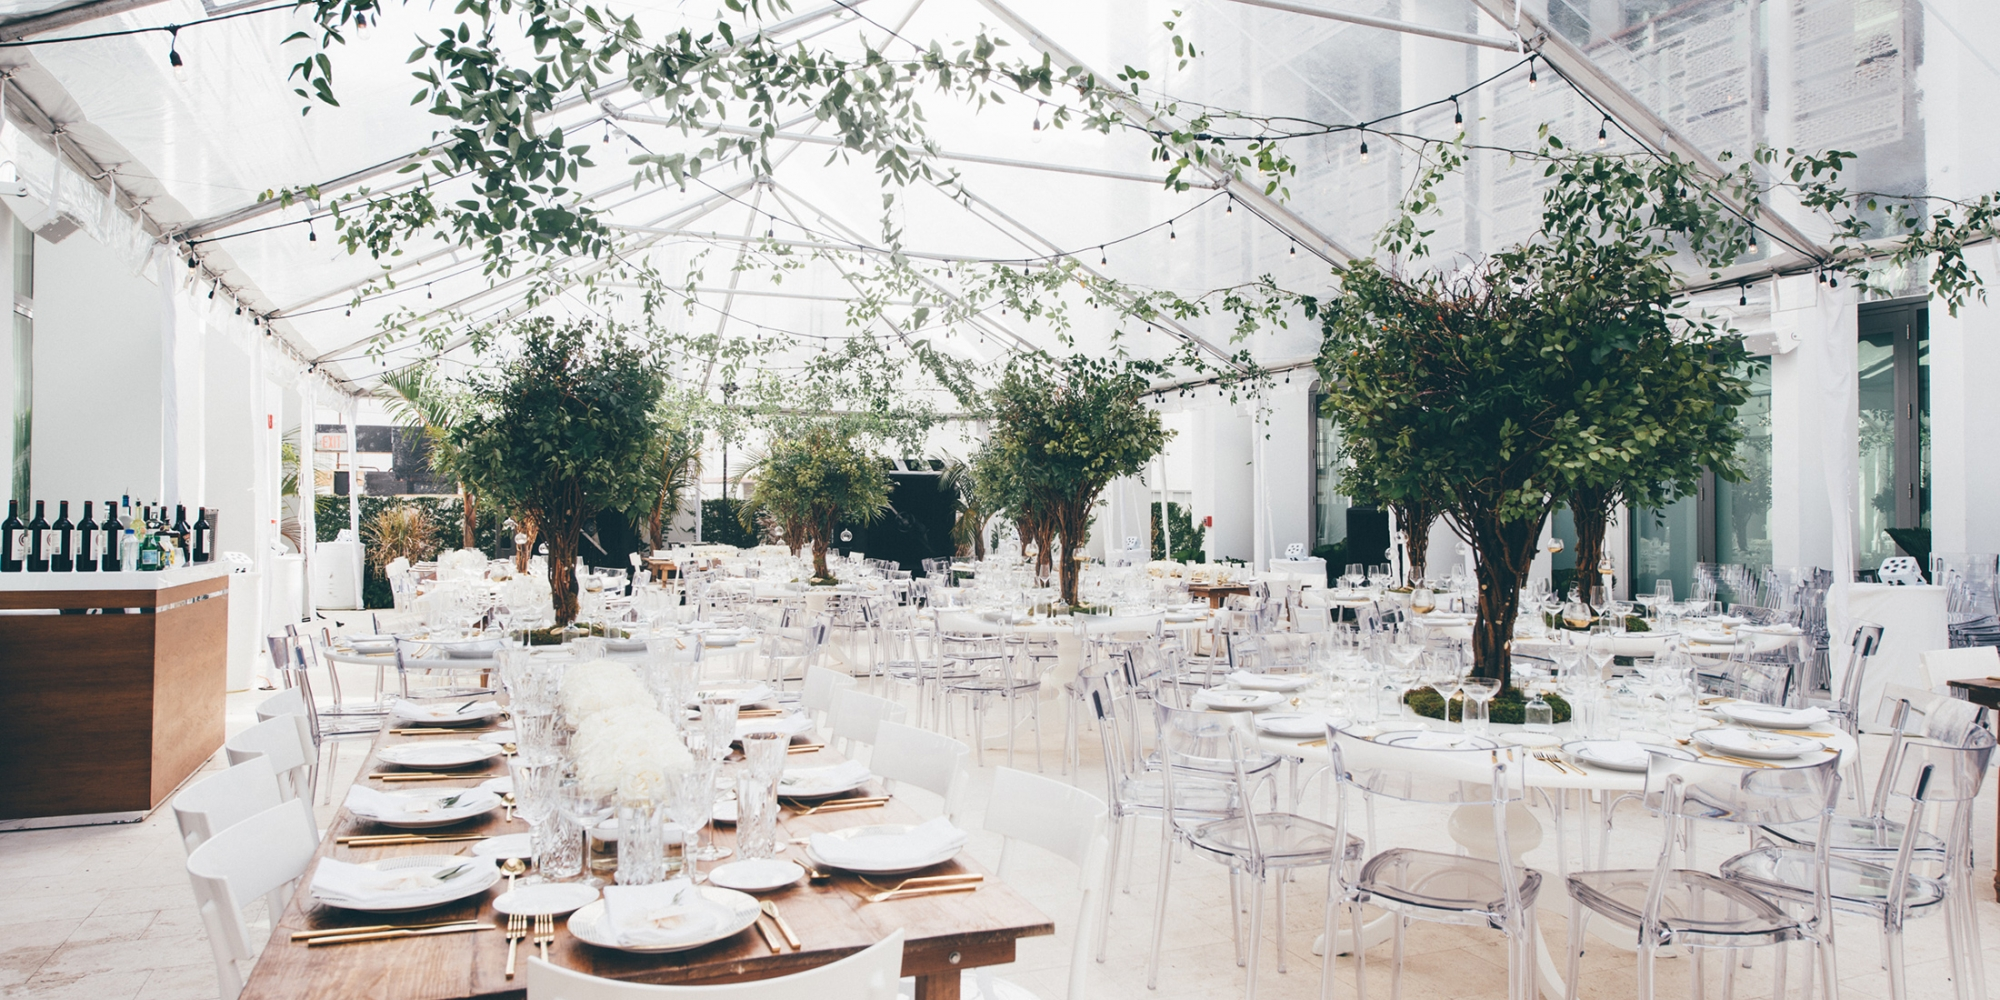 Tables set in a brightly lit atrium.